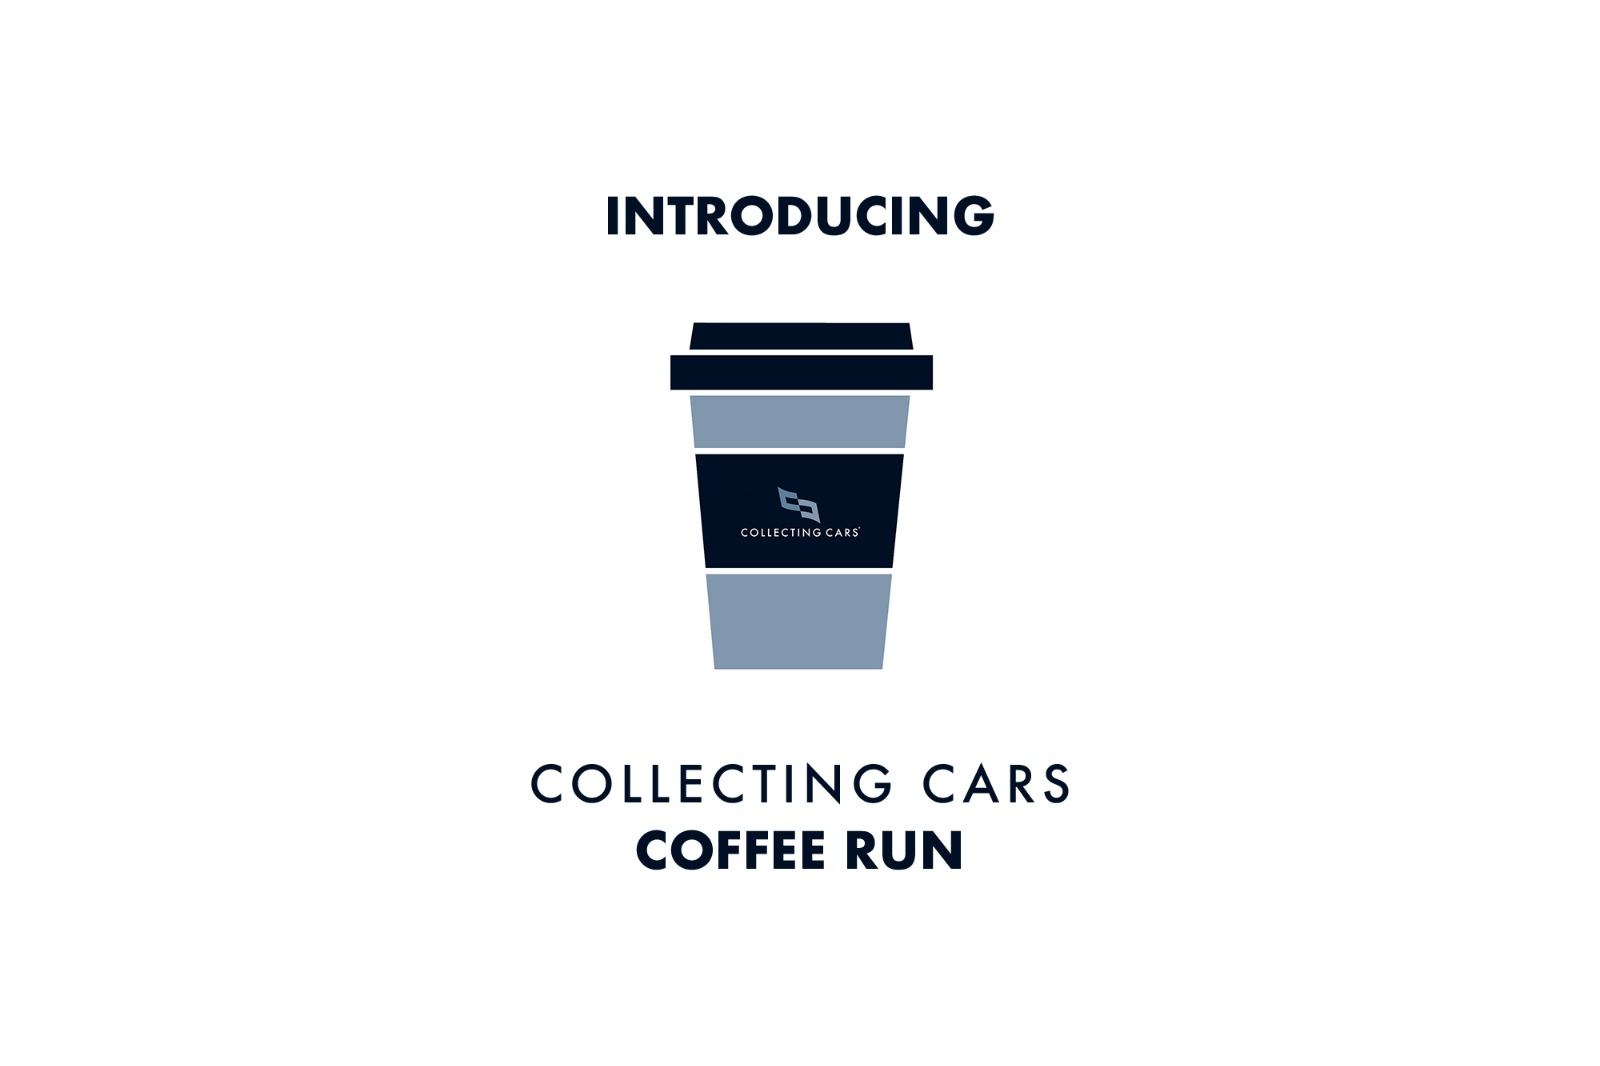 Collecting Cars Introduces 'Coffee Run'